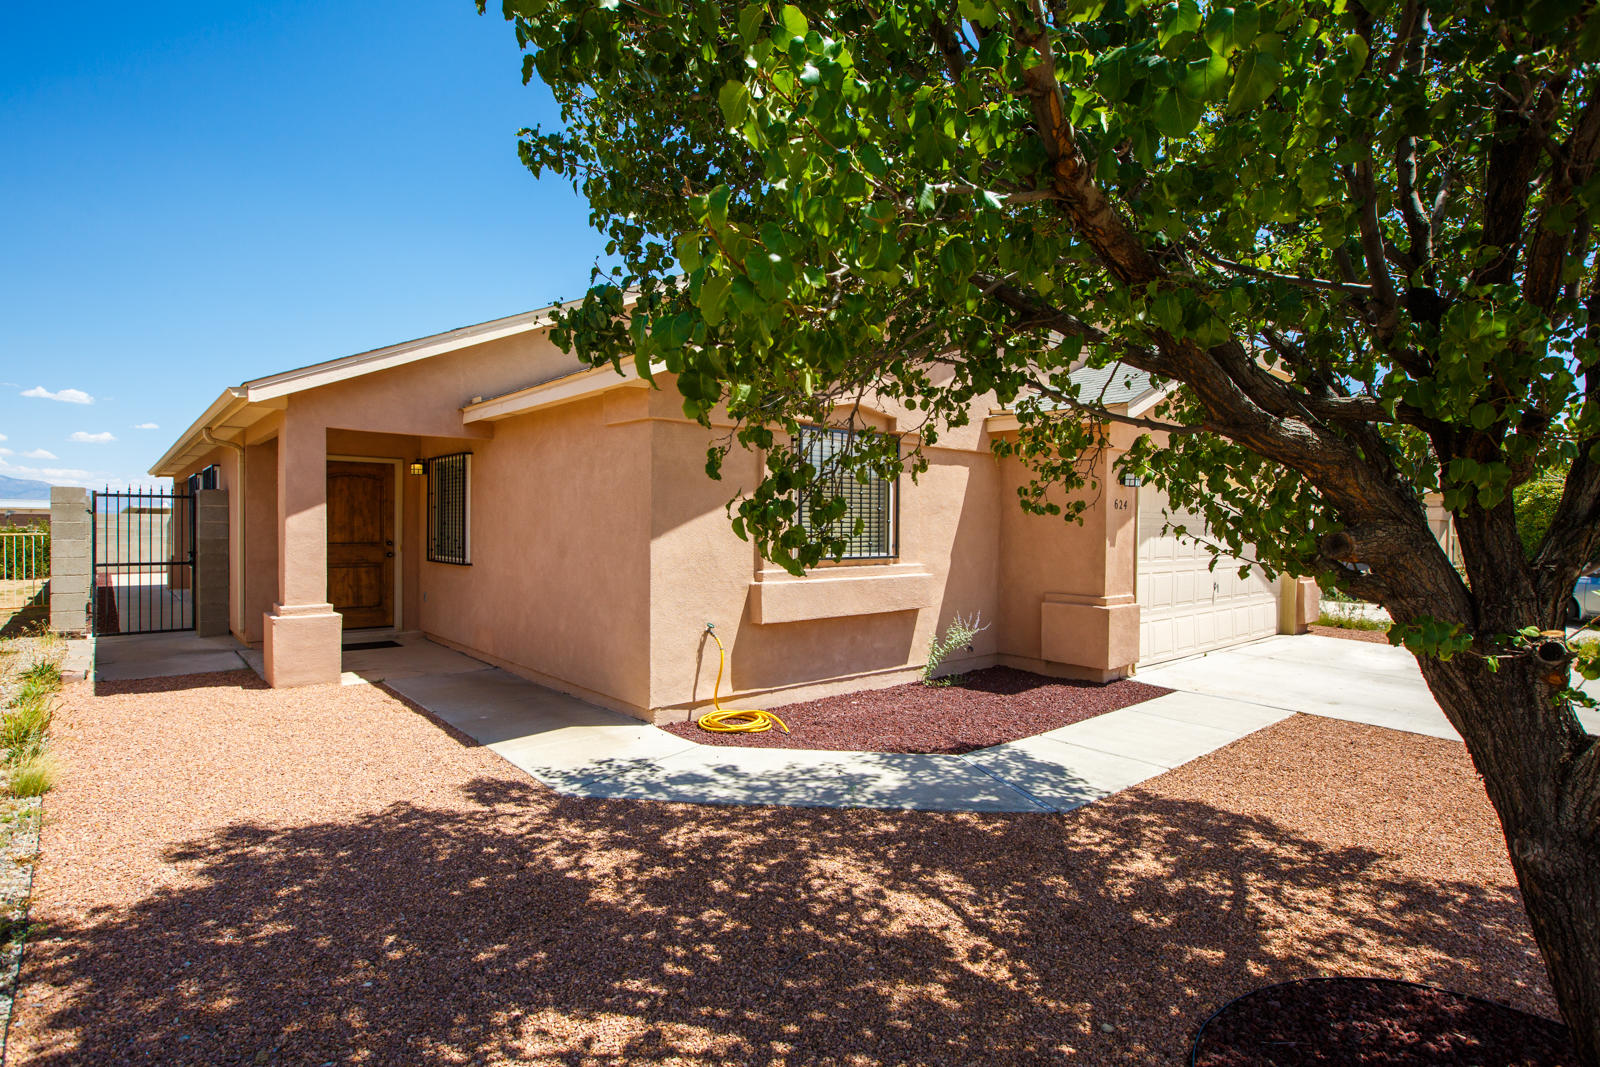 Move in Ready! Pride of ownership is evident from the moment you enter. New front door, new flooring, paint, and baseboards in living room area and 2 of the bedrooms  Backyard features covered patio. Front yard has been landscaped and is low maintenance!